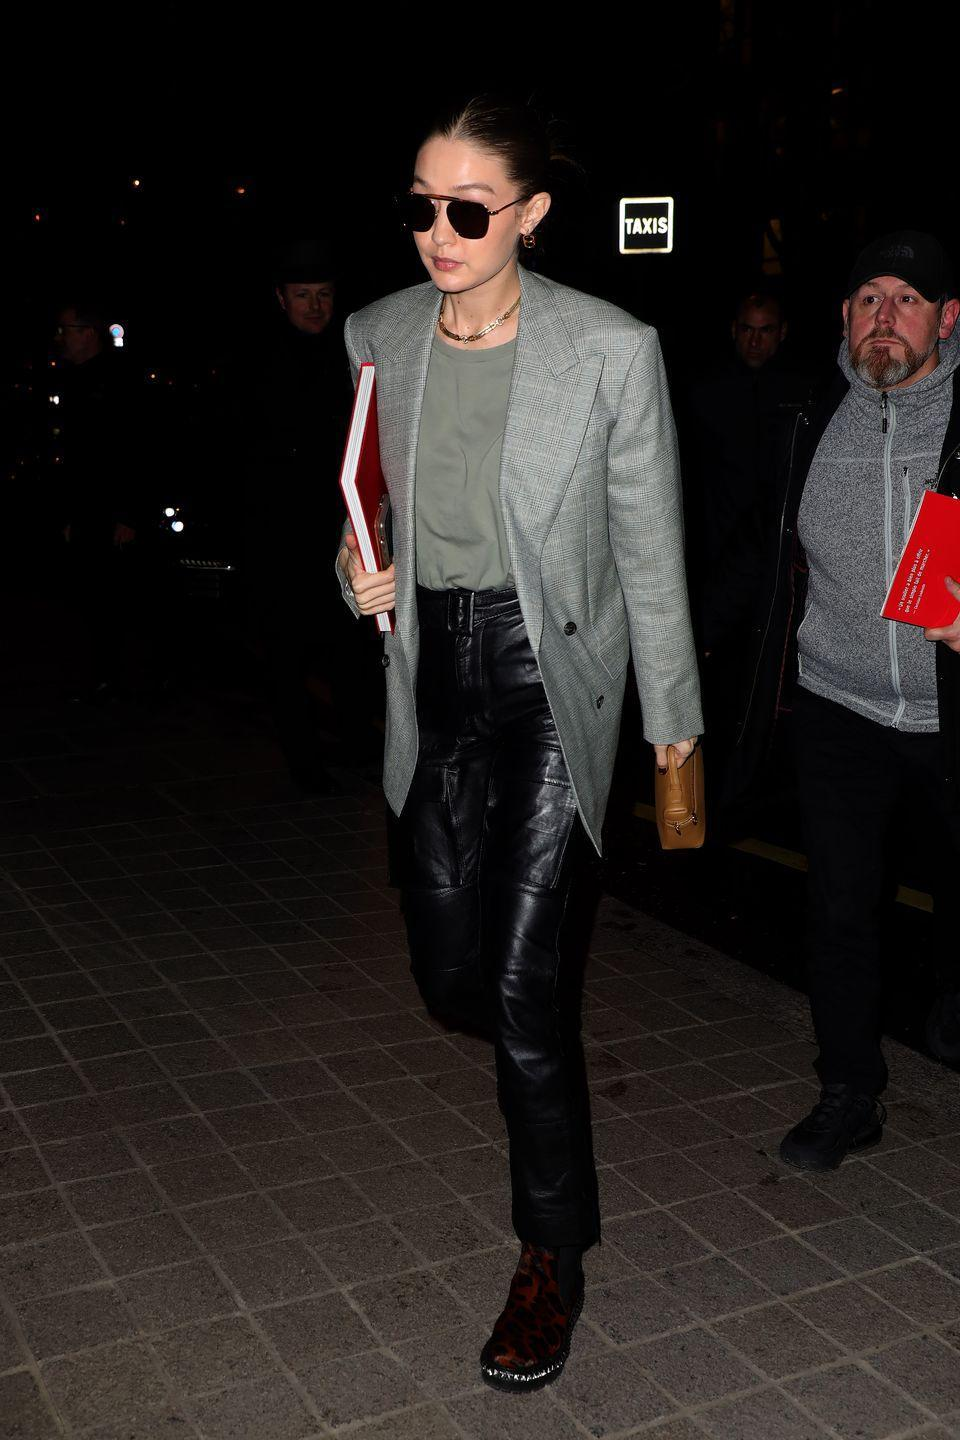 <p>Gigi's worn this outfit equation endless times (seriously, just keep scrolling), but somehow always makes it feel brand new. I think the secret here is those badass leopard boots, amiright?!</p>